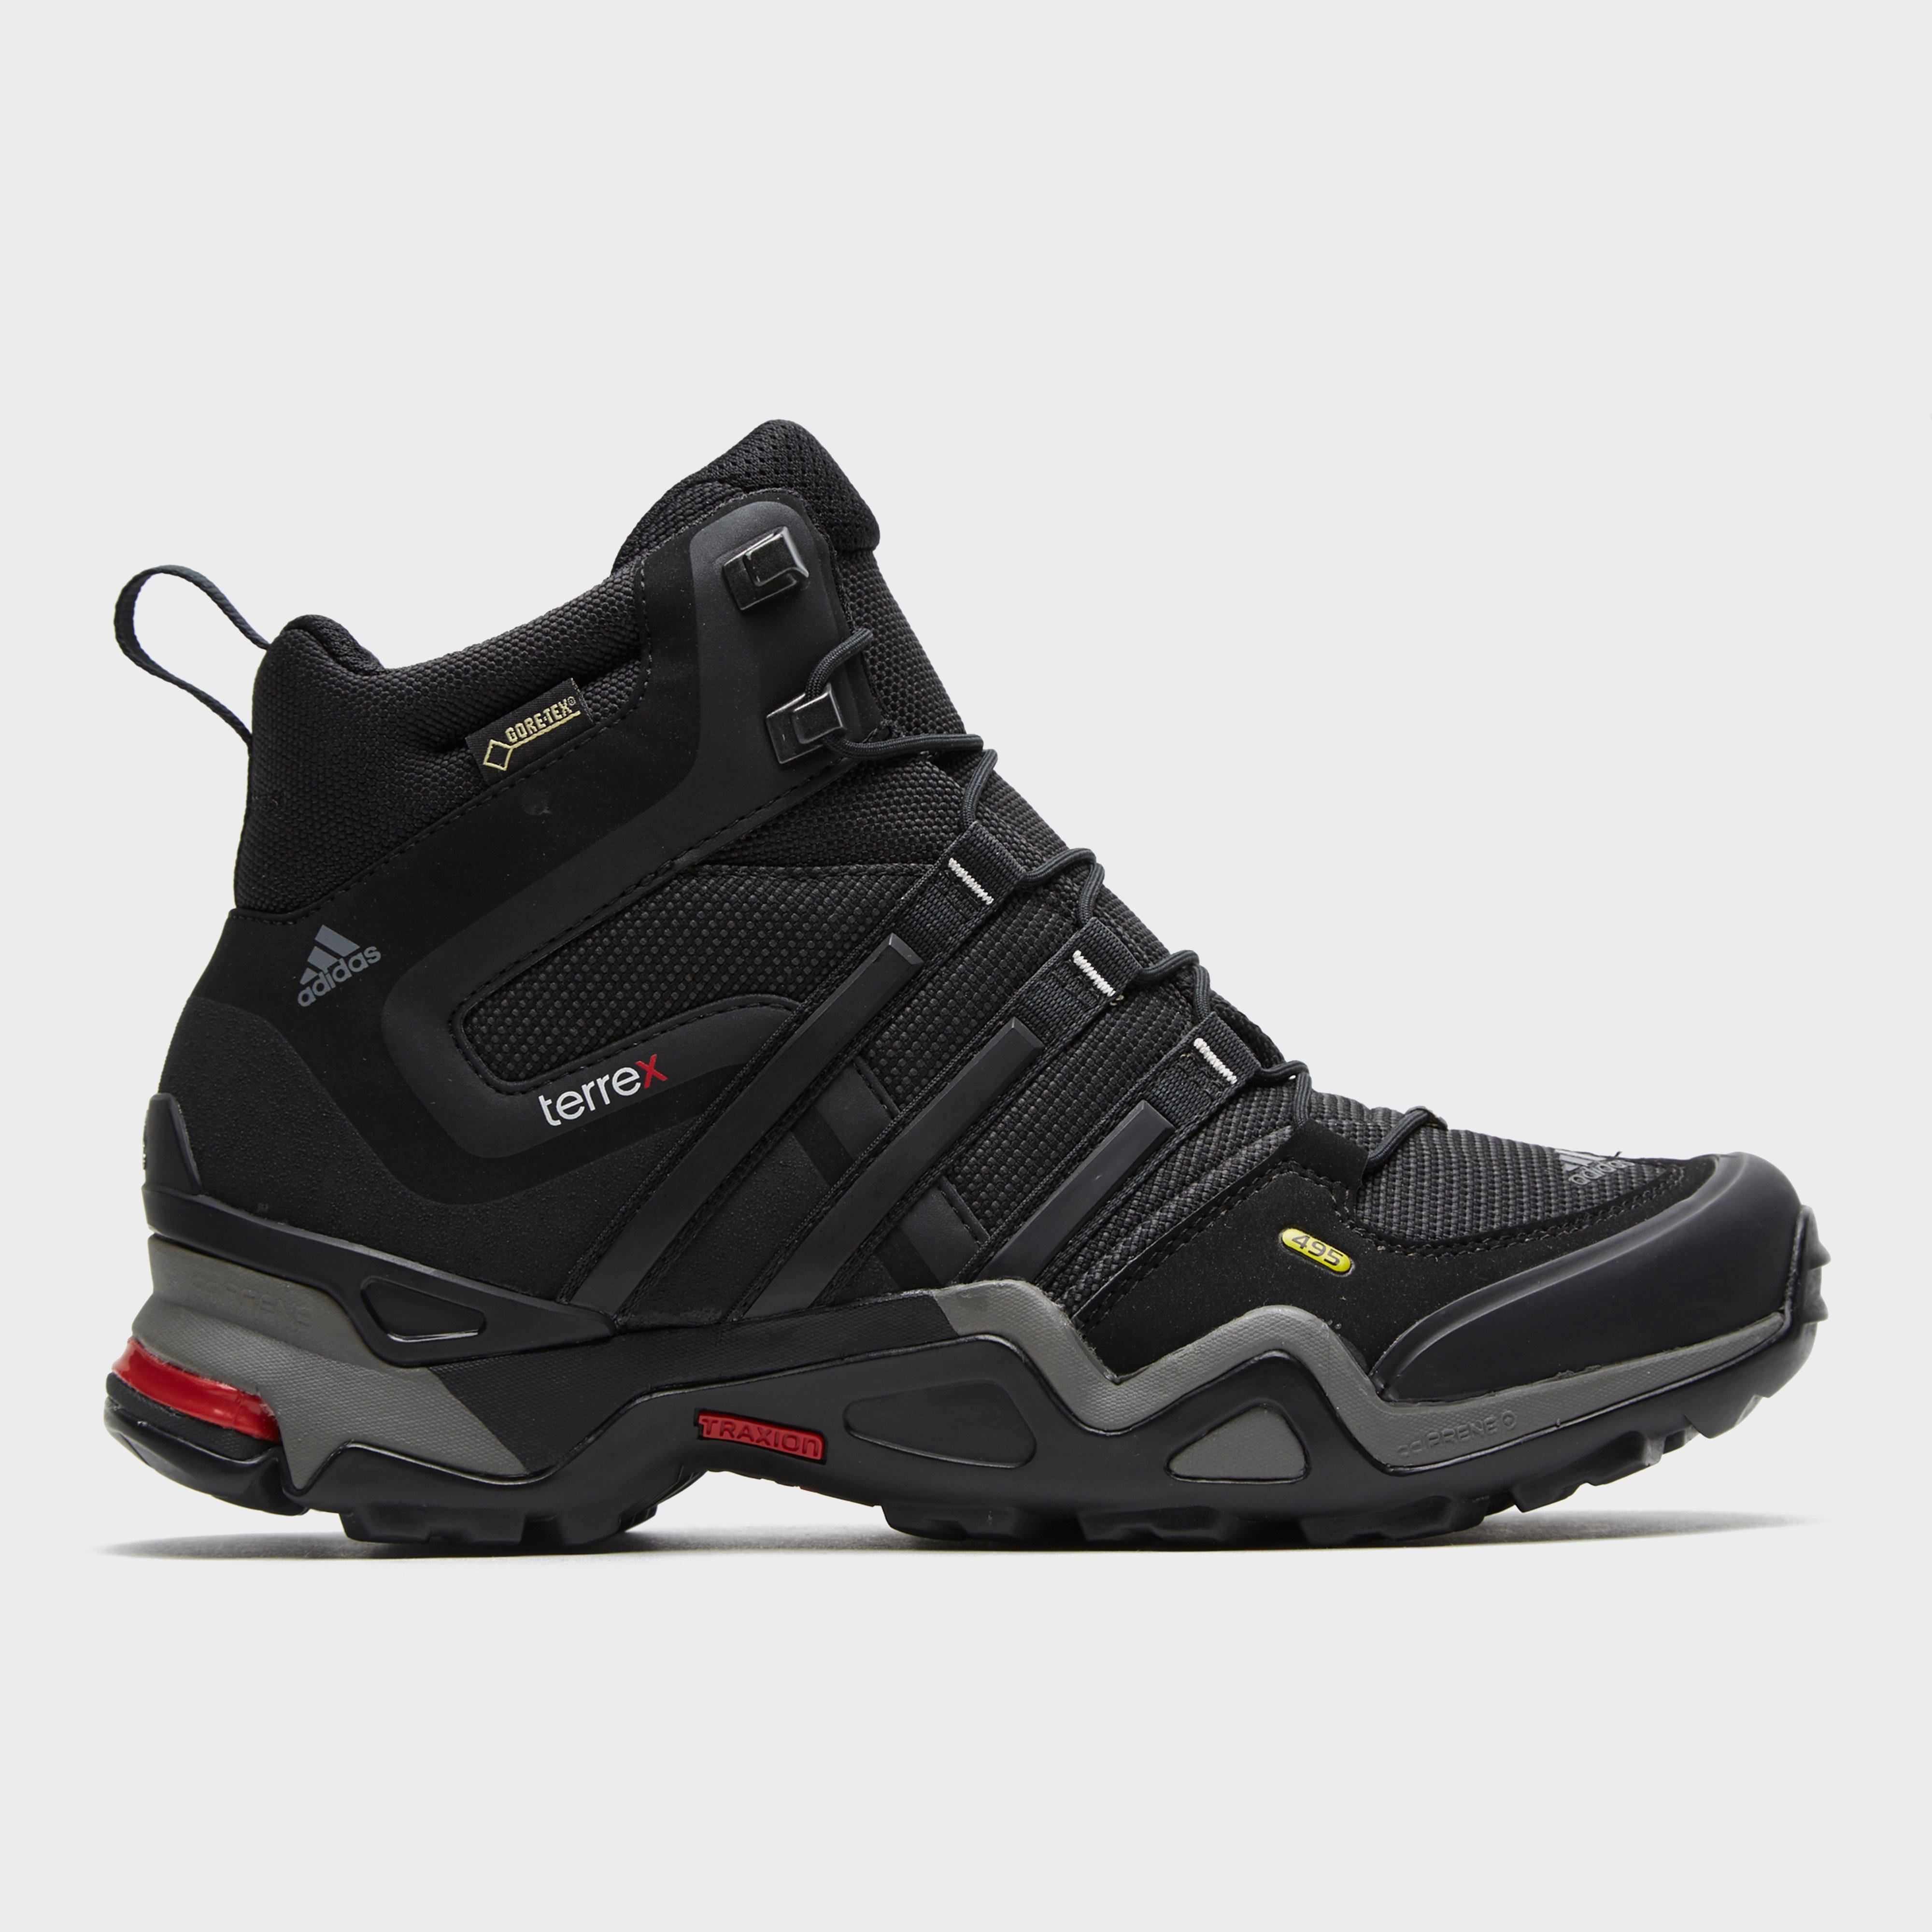 Adidas Mens Terrex Fast X GORETEX High Boot Black